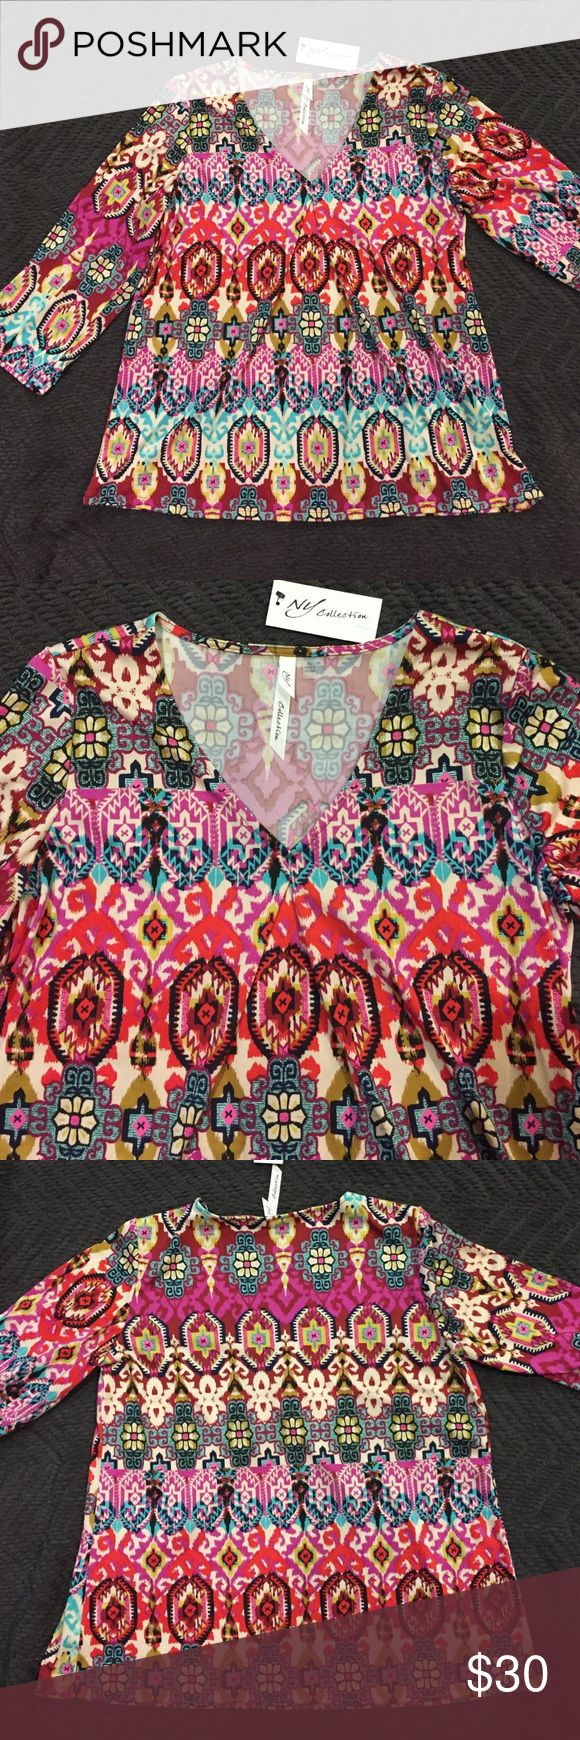 NET Pretty XL 3/4 sleeve top by NY Collection Love this print! NWT 3/4 sleeve top. Measures 19 1/2 inches pit to pit and 24 inches top to bottom. 96% polyester/4% rayon NY Collection Tops